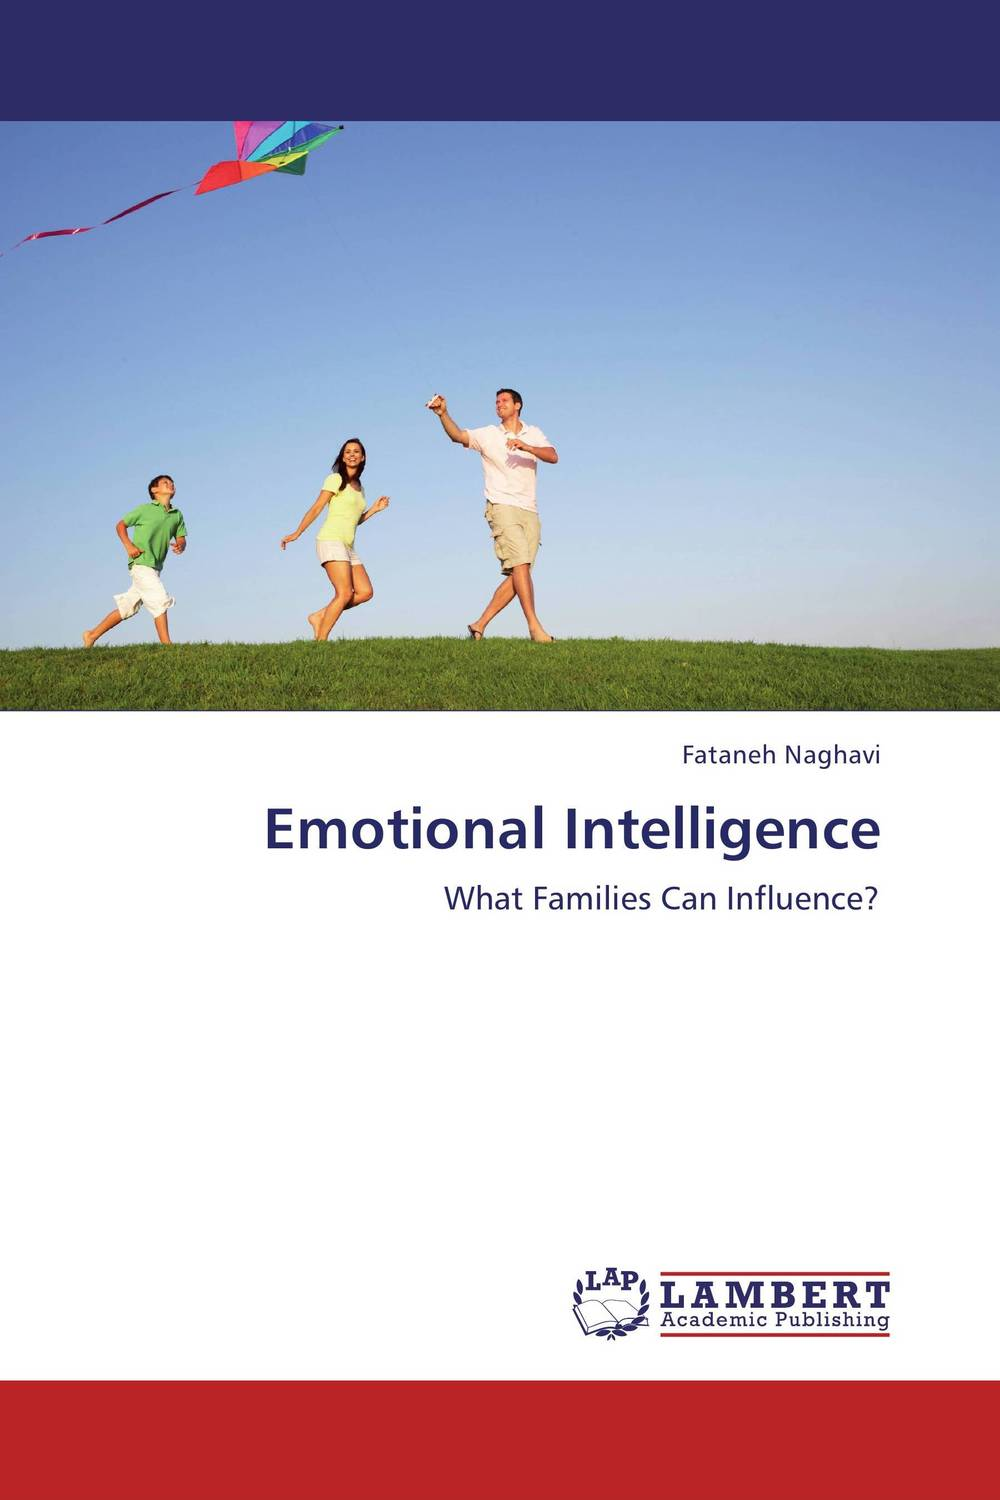 Emotional Intelligence diana giddon unequaled tips for building a successful career through emotional intelligence